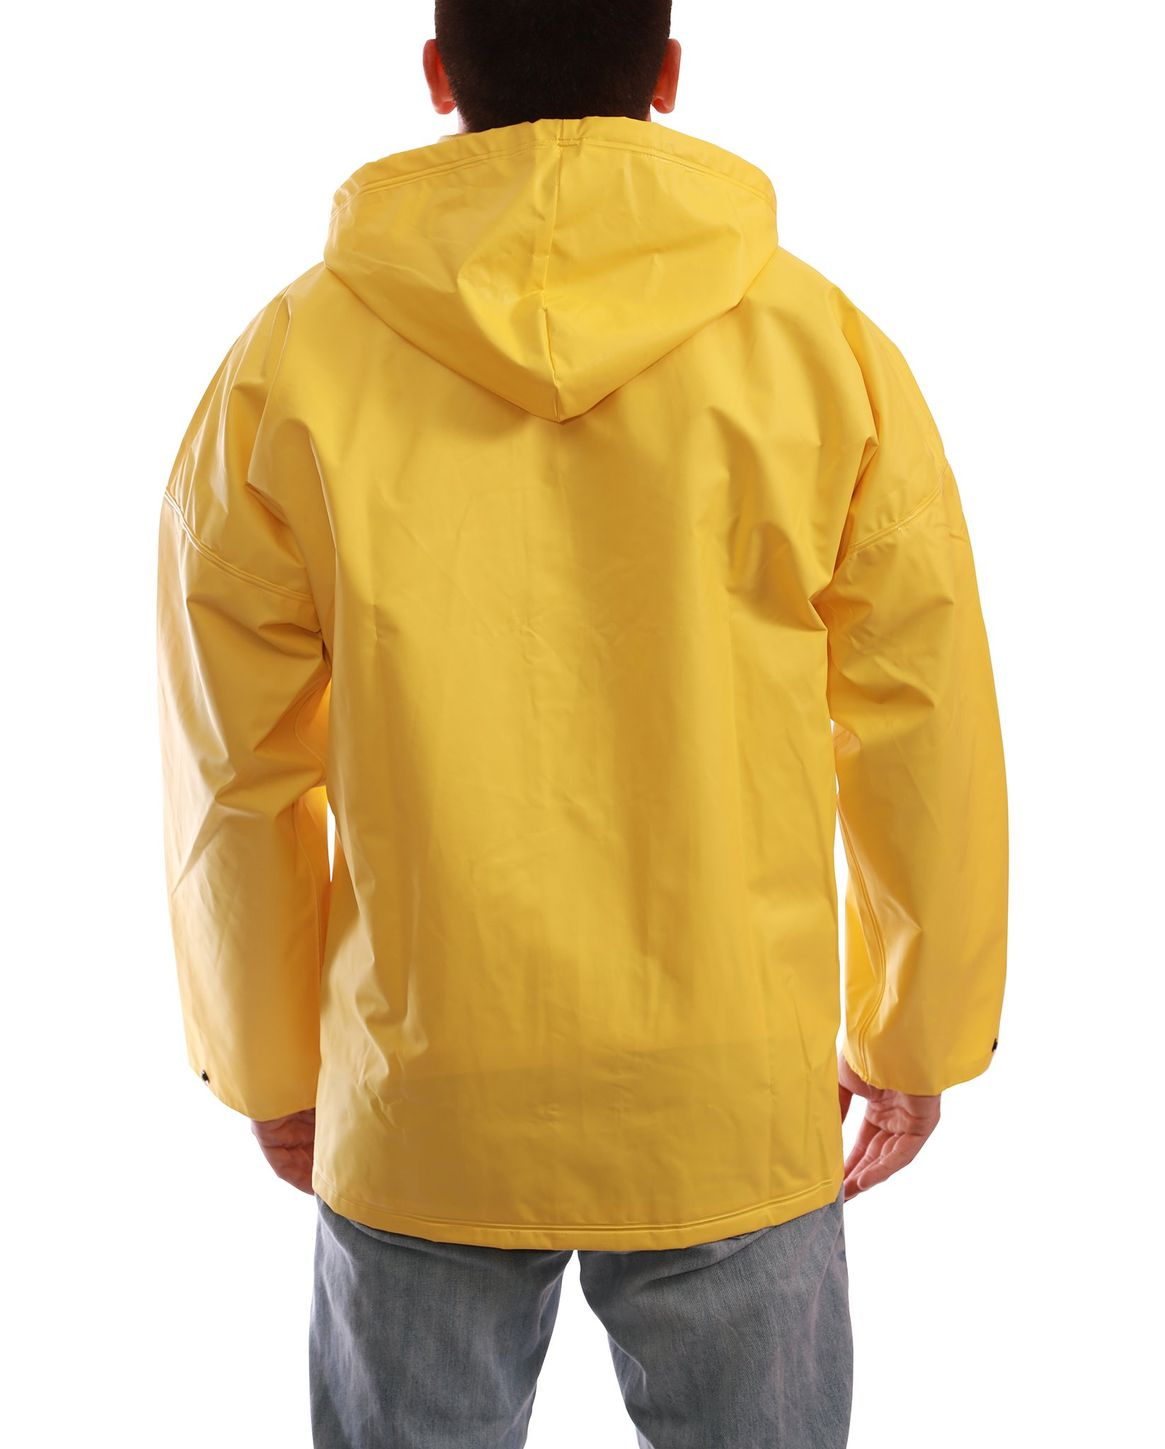 tingley-j56207-durascrim-fire-resistant-jacket-pvc-coated-chemical-resistant-with-hood-snaps-back.jpg